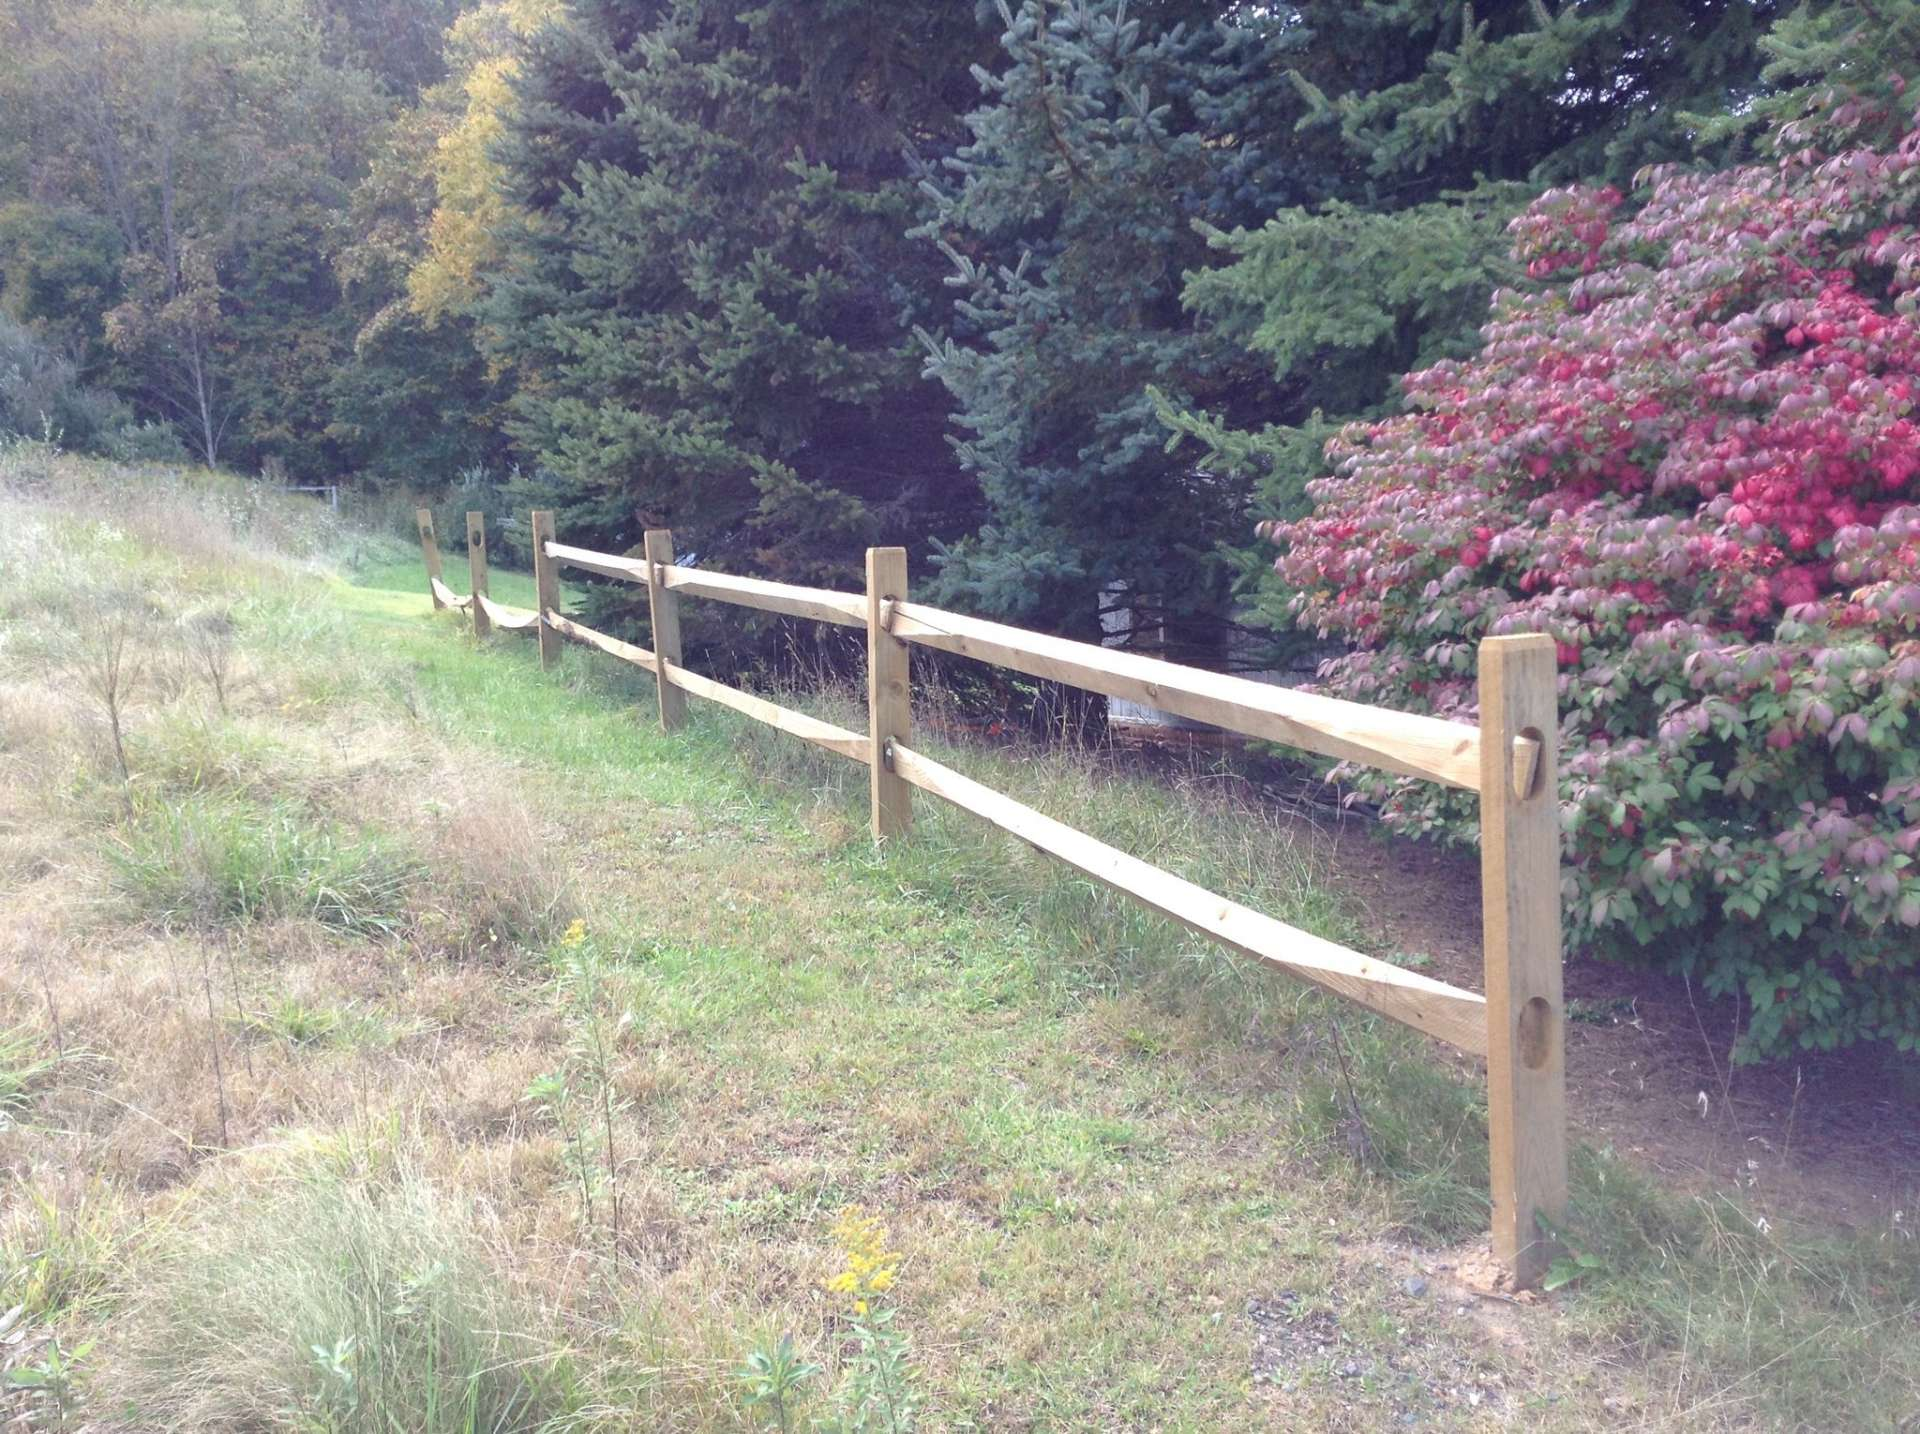 This photo provided by the owner shows a fence that runs up the land near the gate.